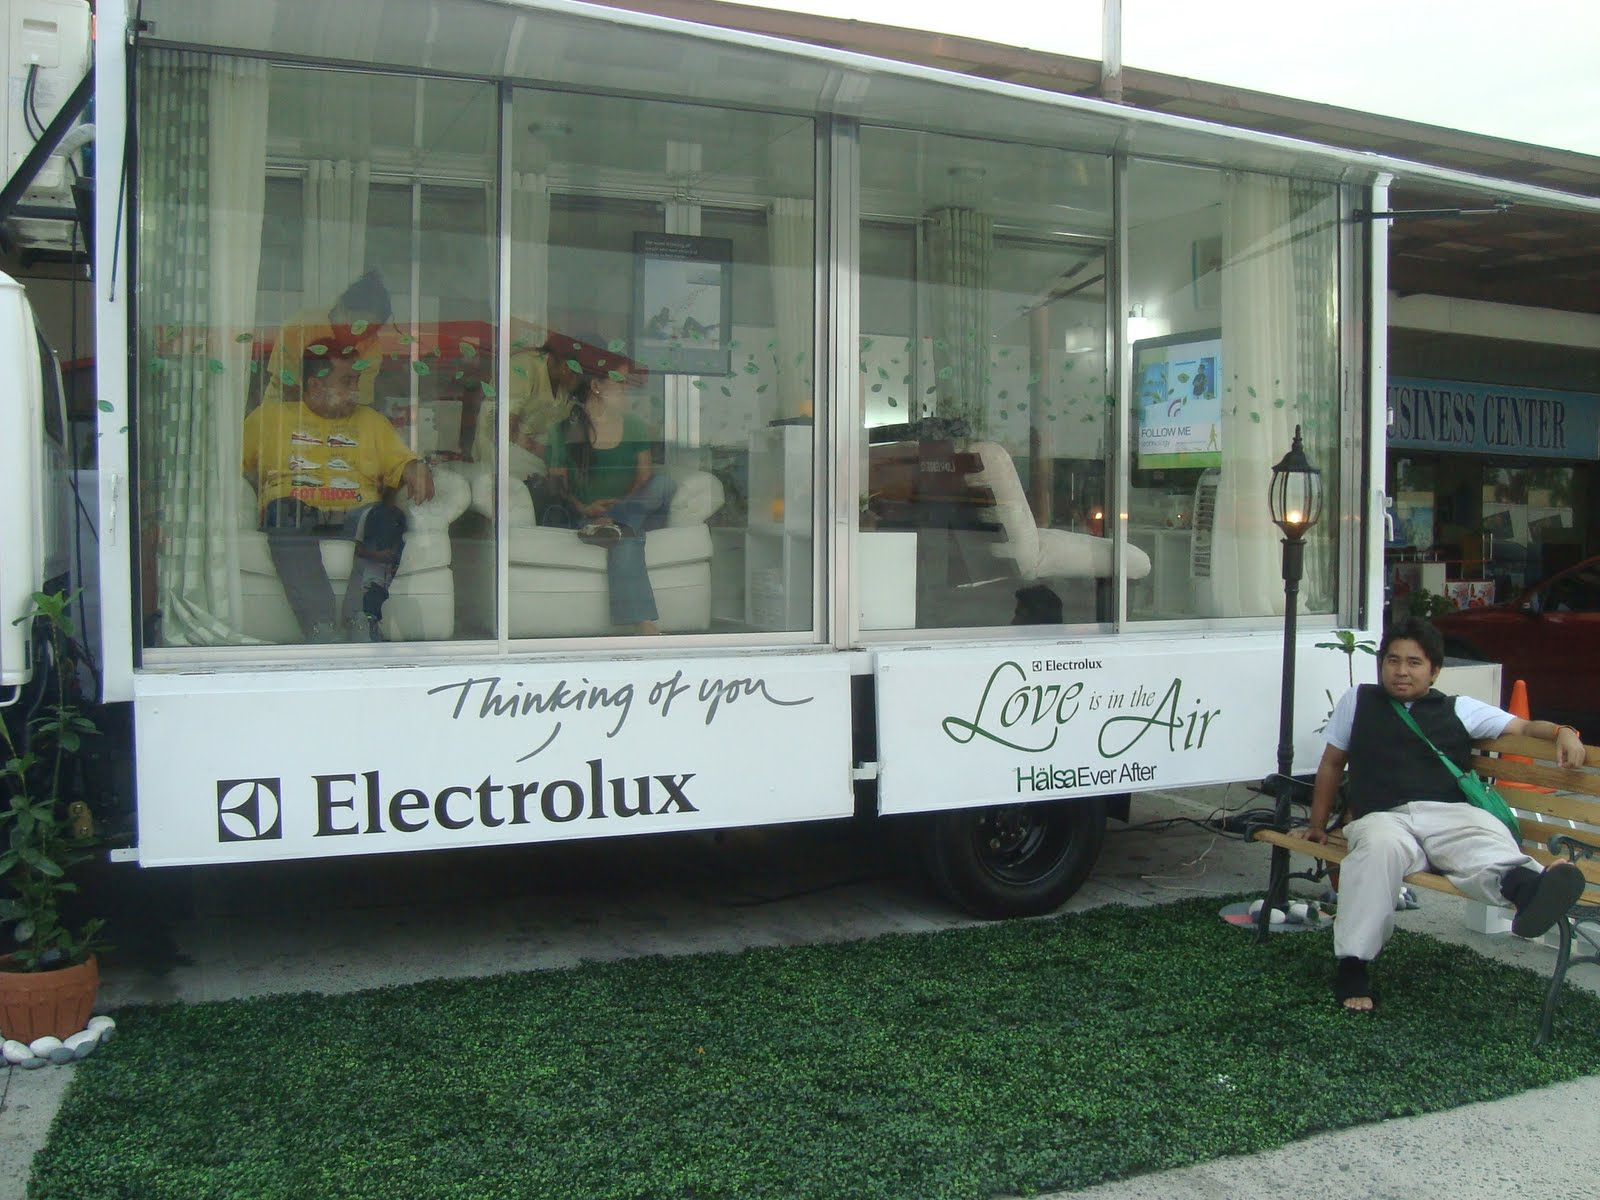 Take A Break At The Electrolux Mobile Spa Have Model Habcf024sd After Power Outage Last Night And With Holy Week We Would Also Encounter Lot Of Stress Sometimes More Than Vacation That Plan To